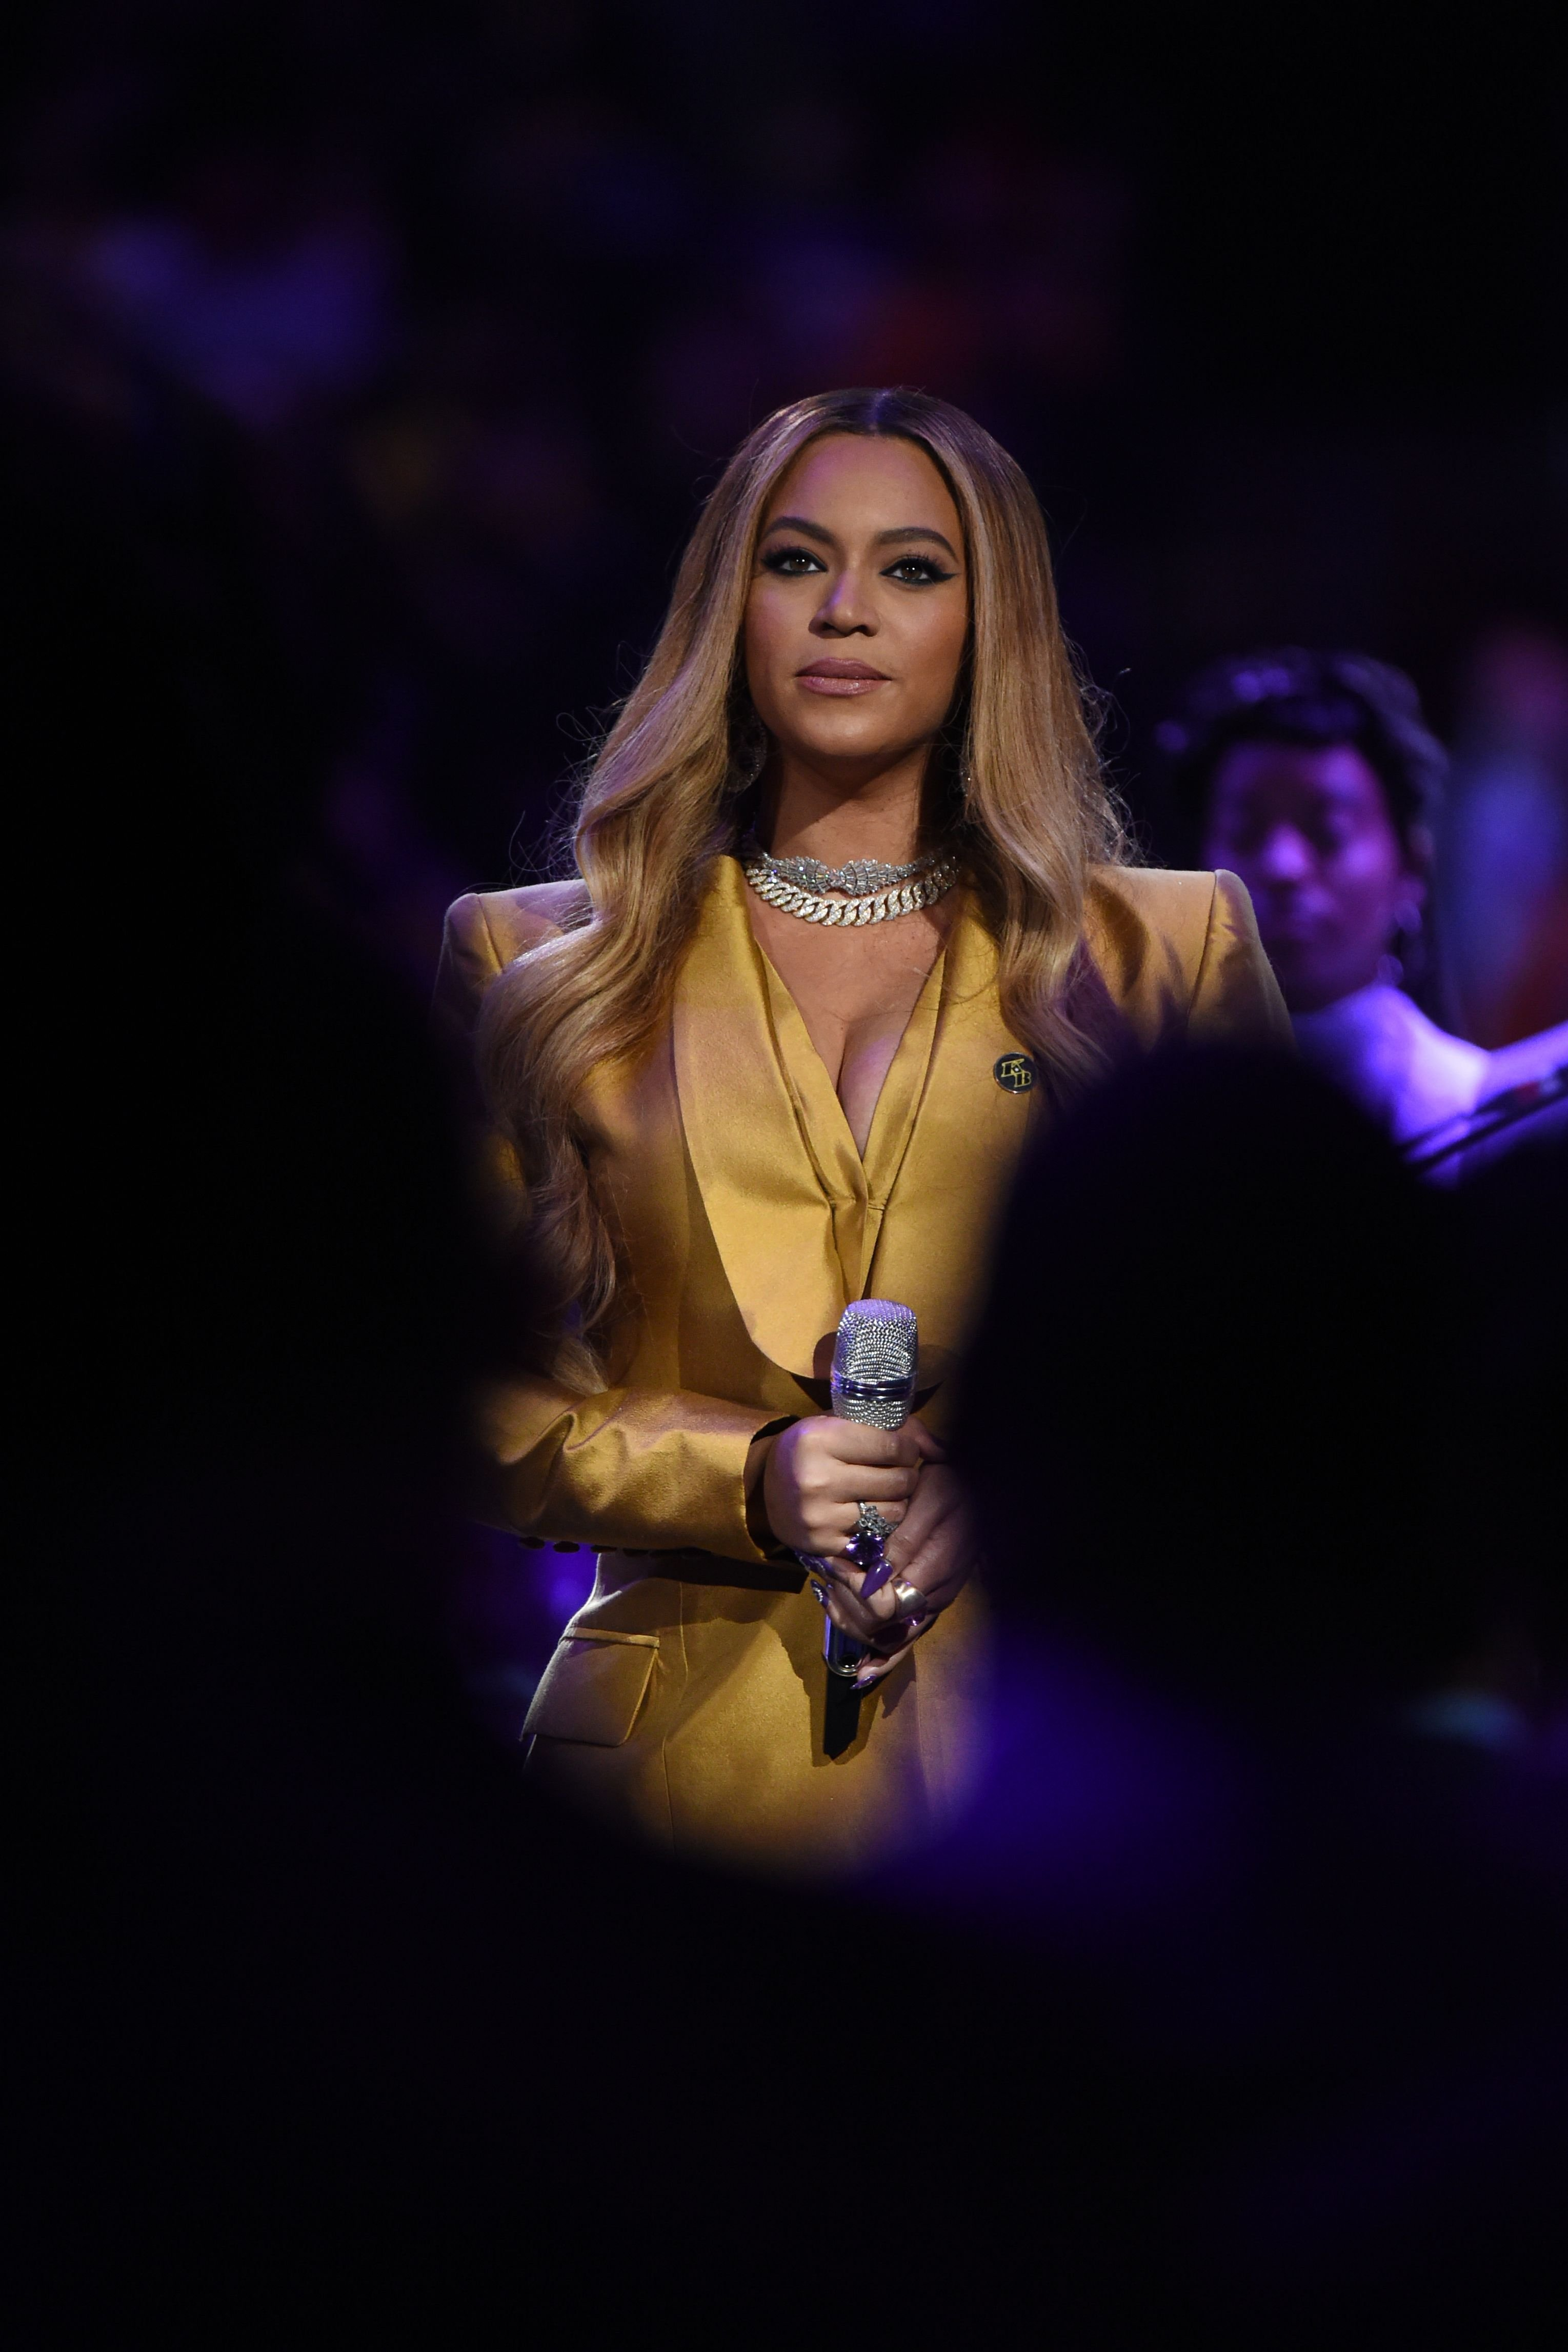 Beyoncé at the Kobe Bryant Memorial Service on February 24, 2020, at the STAPLES Center in Los Angeles, California | Photo: Getty Images